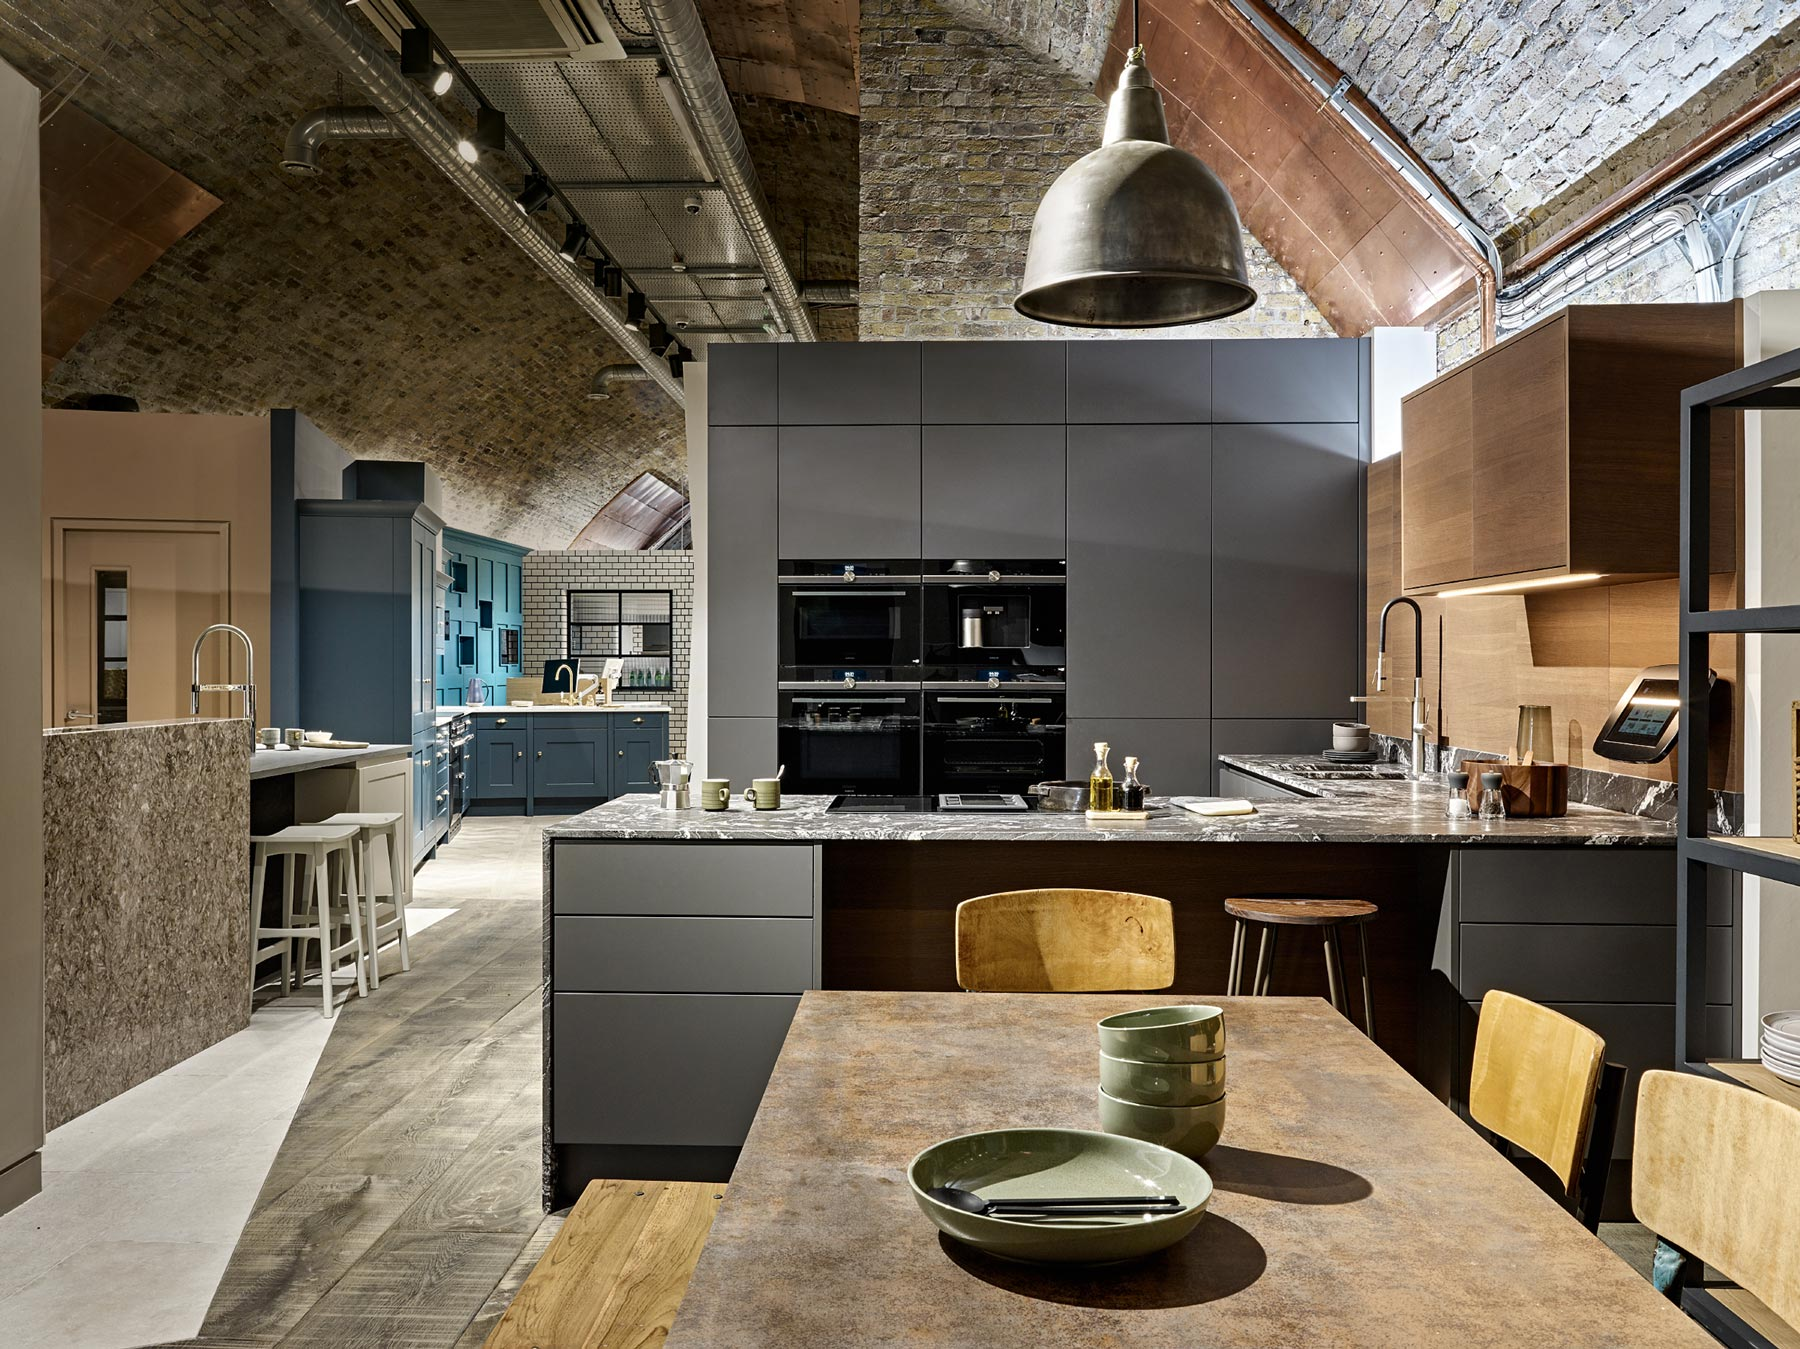 kitchen showroom salvaged cabinets for sale 13 must visit showrooms around the uk design inspiration wide range of stylish options means you can personalize and get creative with everything from doors to worksurfaces